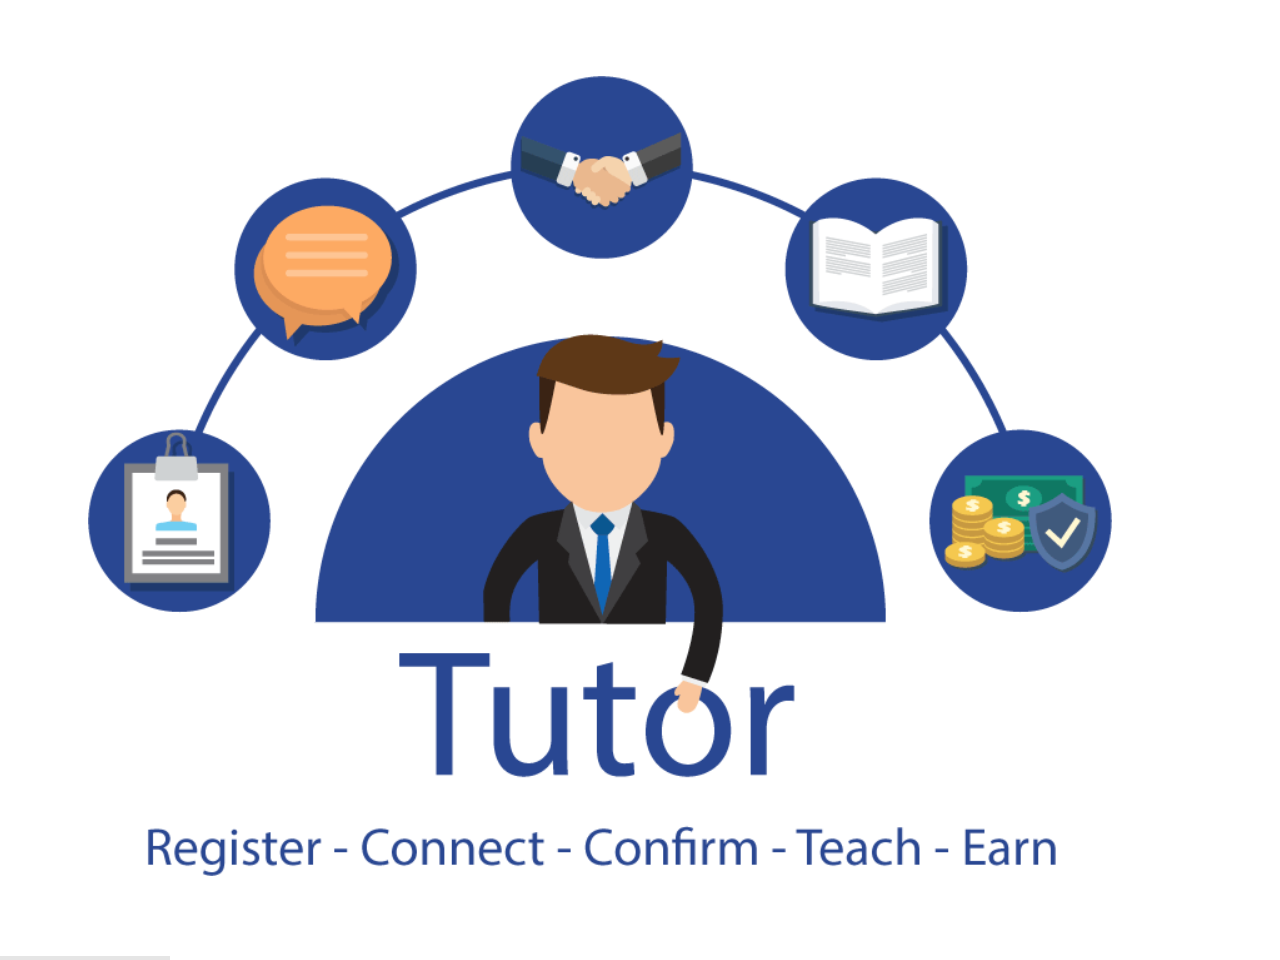 Click Here to Register as Tutor